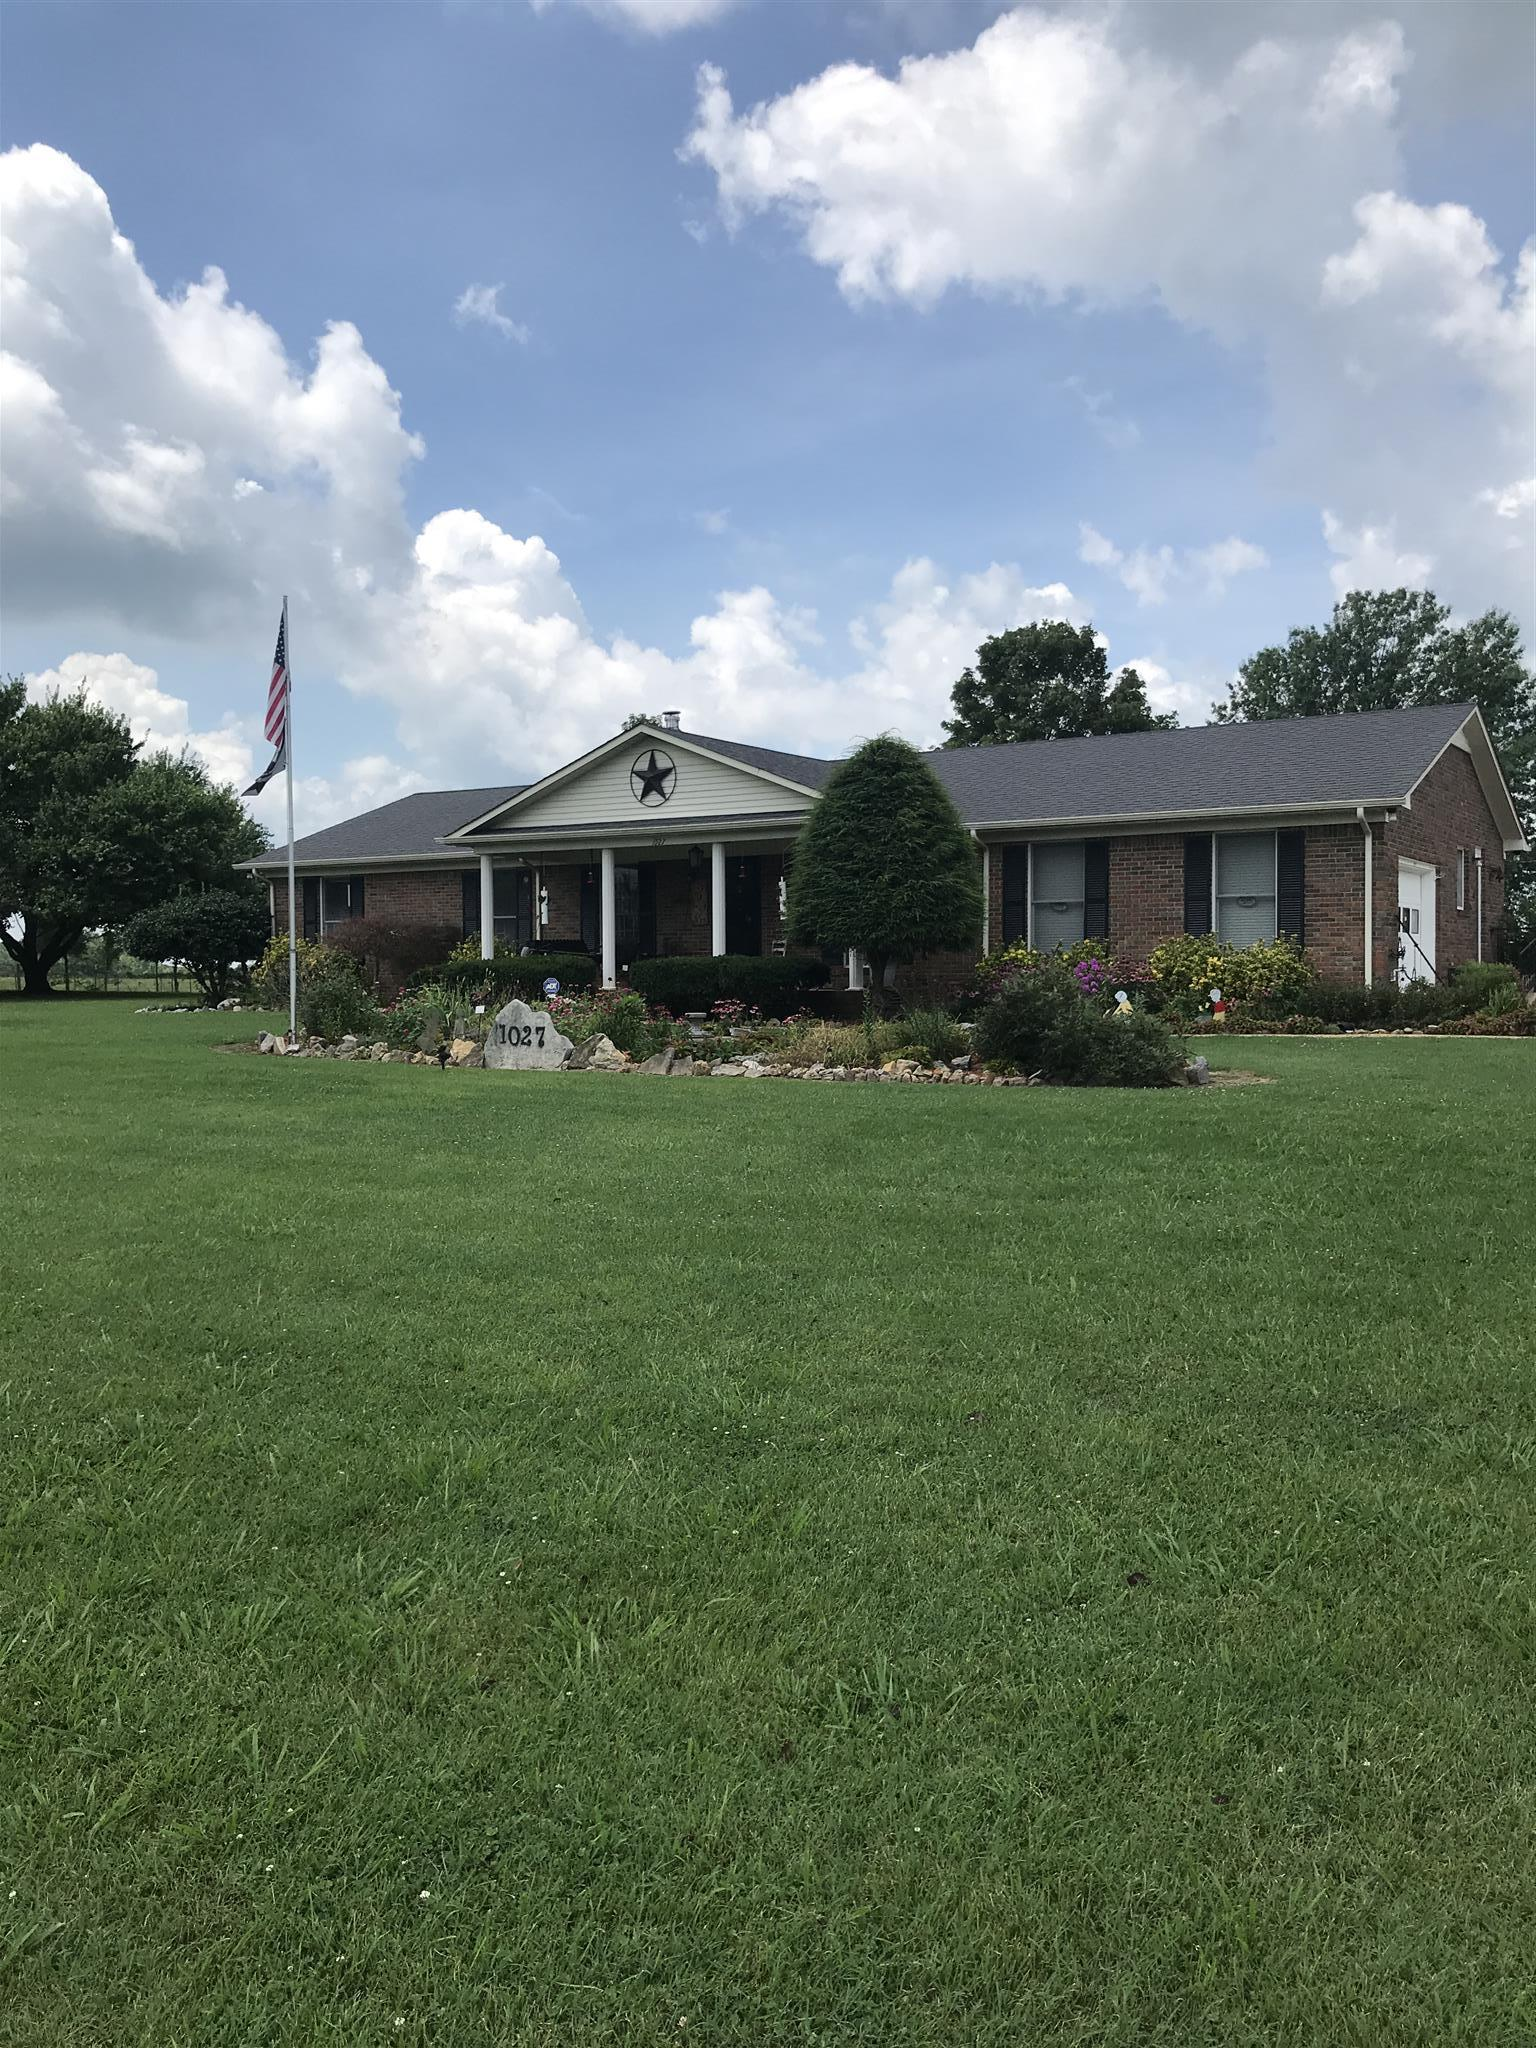 1027 Rabbit Trail Rd, Five Points, TN 38457 - Five Points, TN real estate listing